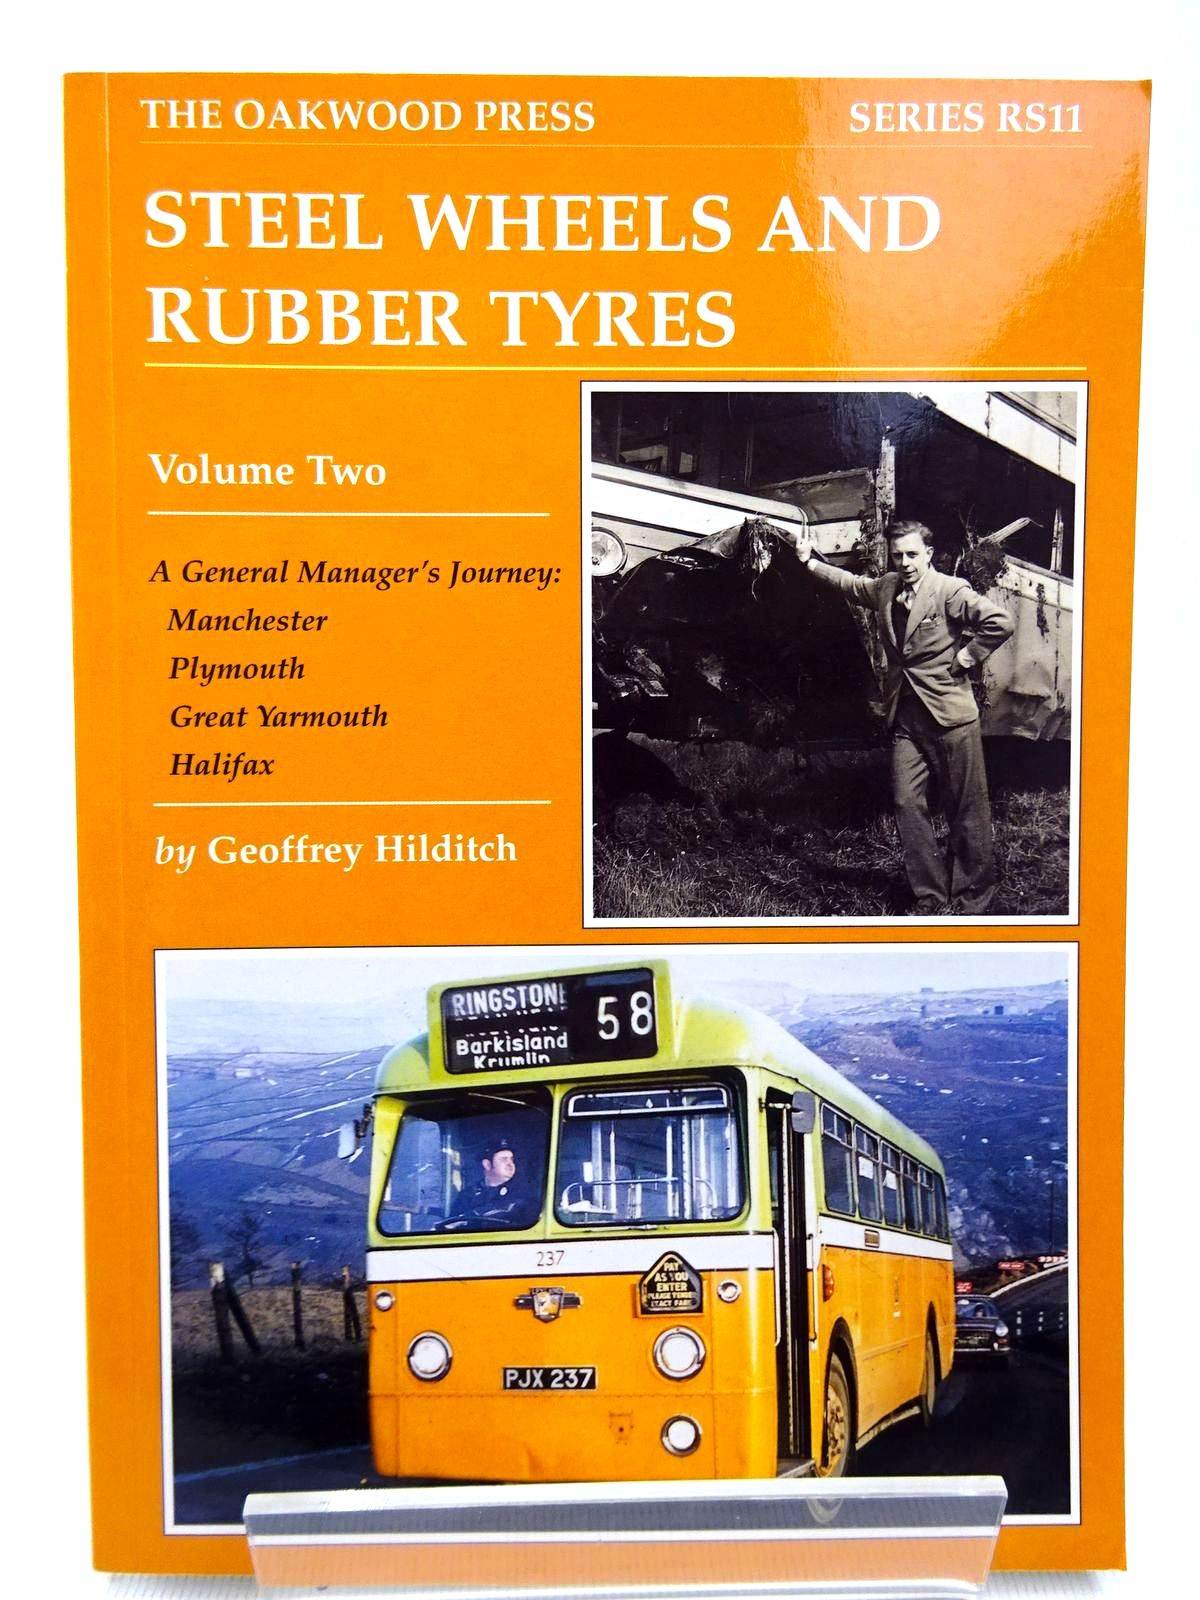 Photo of STEEL WHEELS AND RUBBER TYRES VOLUME TWO written by Hilditch, Geoffrey G. published by The Oakwood Press (STOCK CODE: 1816370)  for sale by Stella & Rose's Books